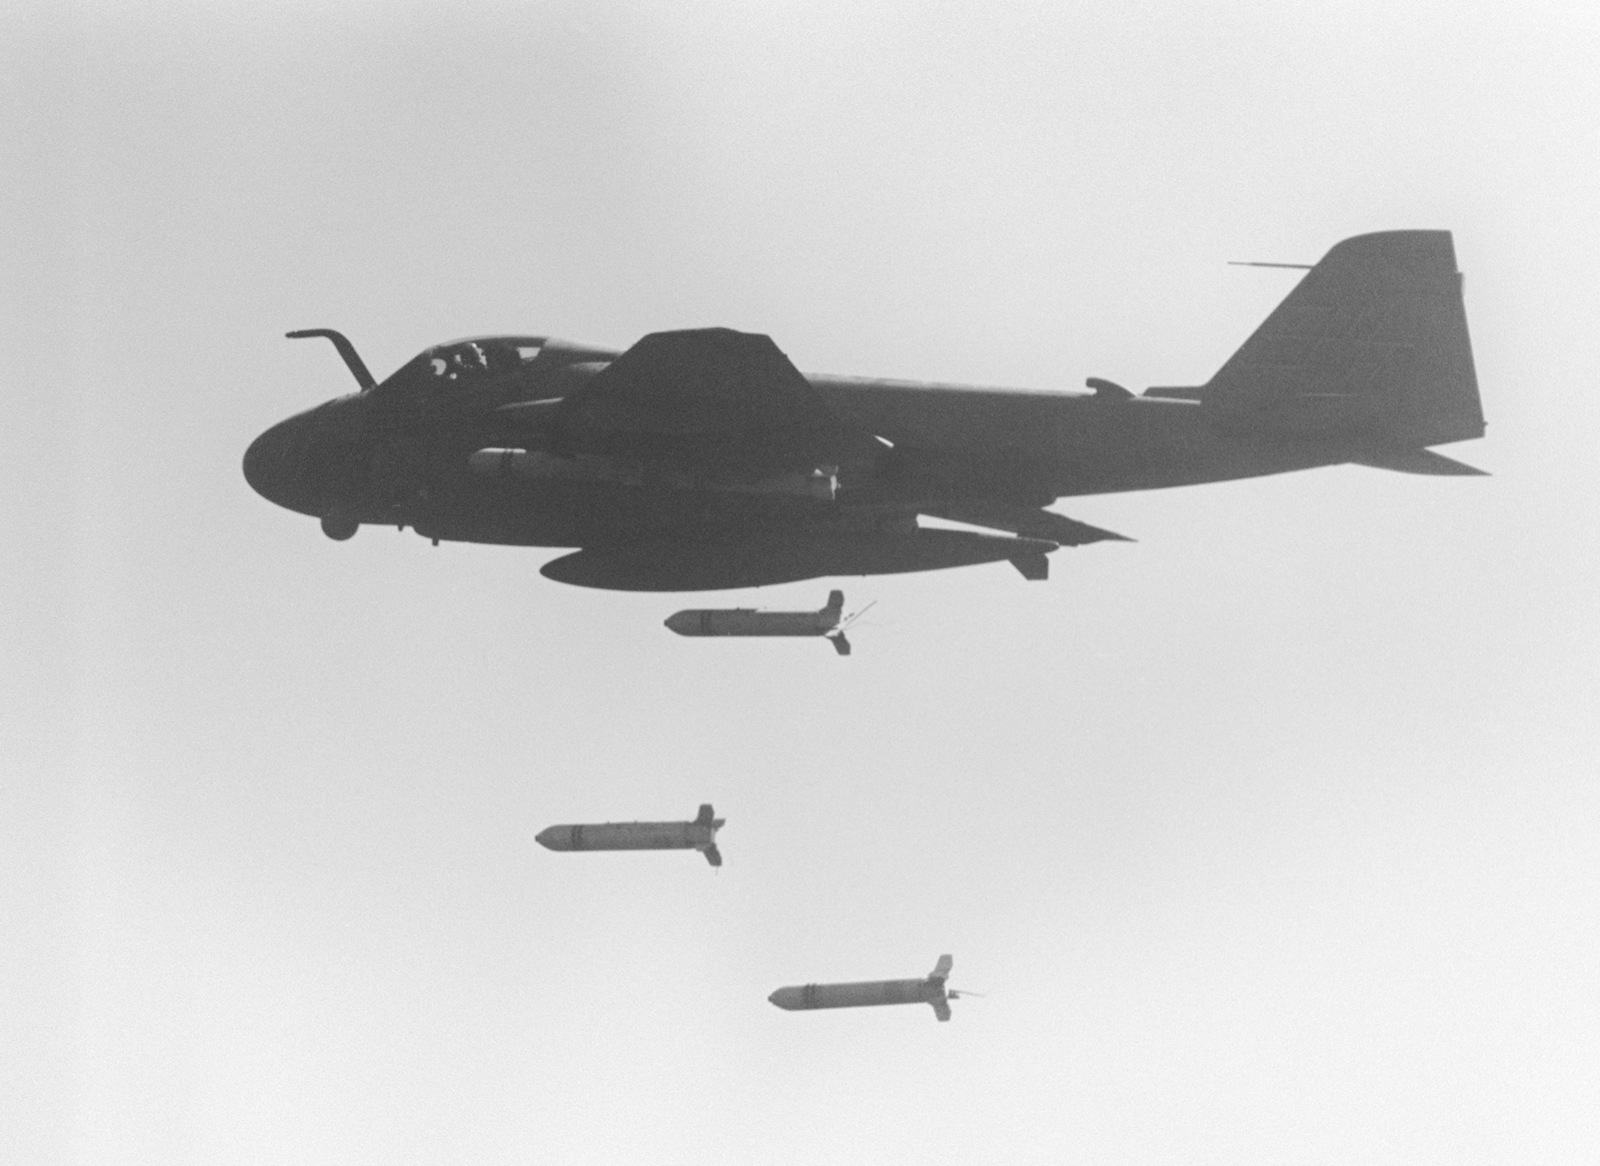 An air to air left side view of an A-6E Intruder aircraft dropping CBU-59 cluster bombs over Iranian targets in retaliation for the mining of the guided missile frigate USS SAMUEL B. ROBERTS (FFG 58)